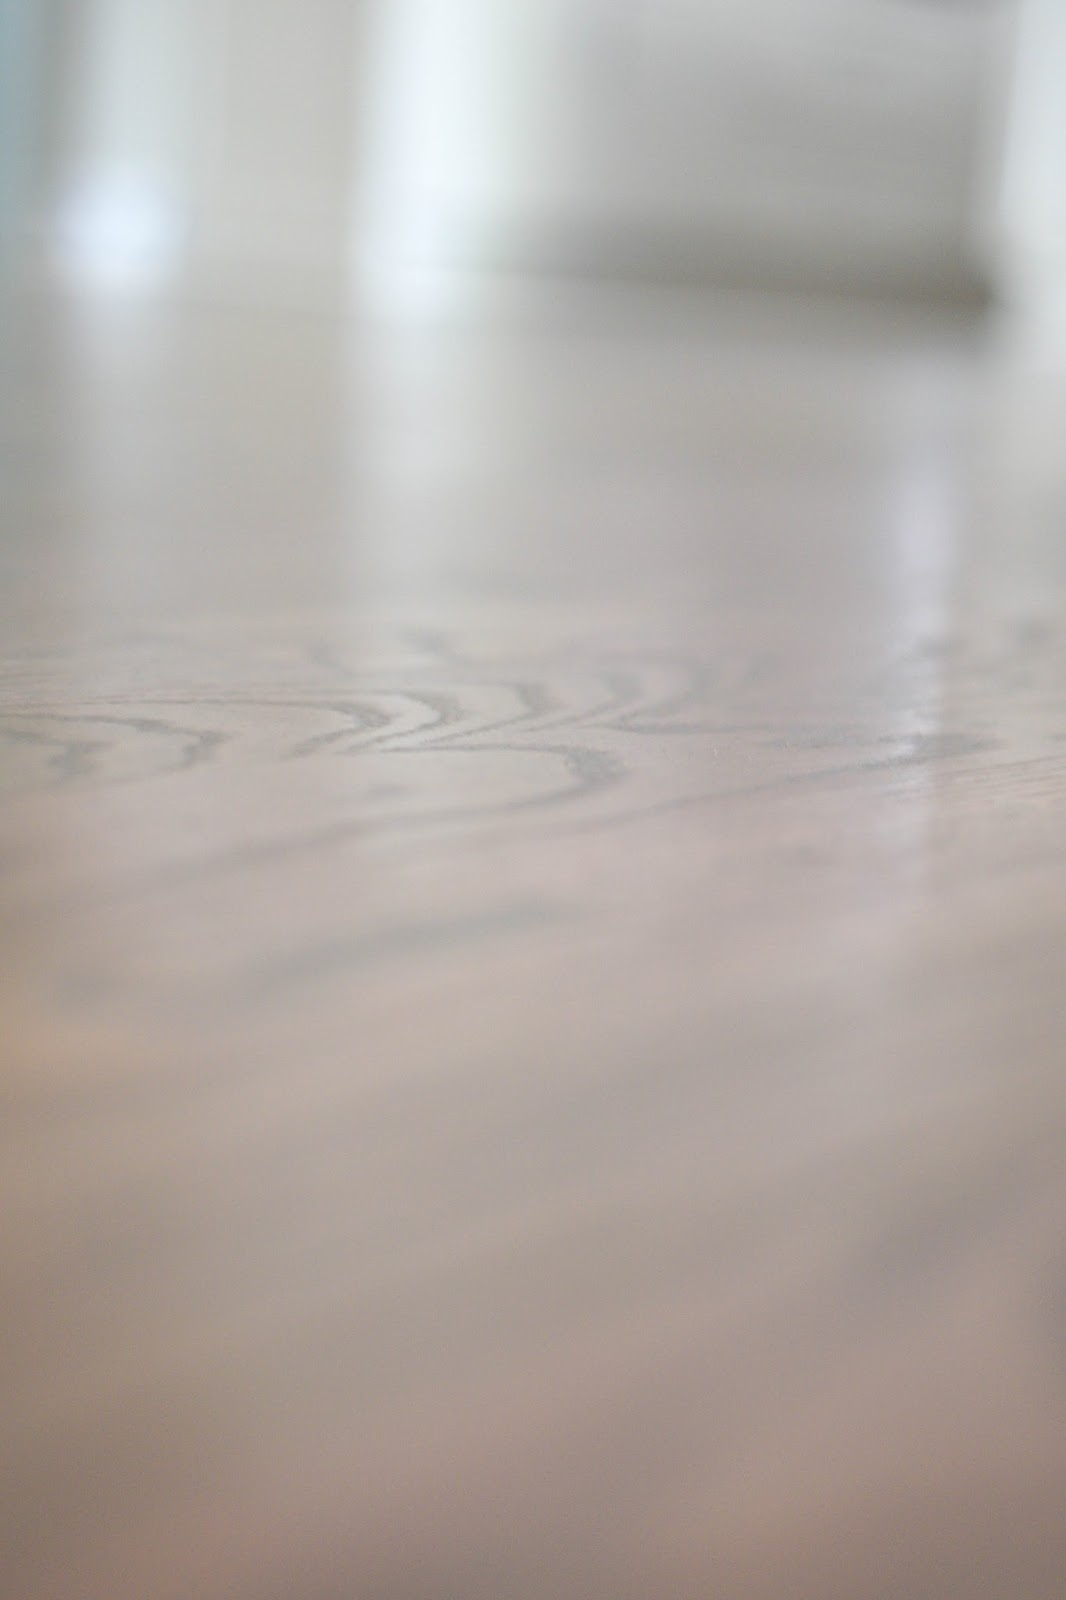 on of white magnificent your size floor light gray greystaining with image design dark full yourself stained onstaining furnace wood ideas darkerstaining pinterest hardwood black staining best floors